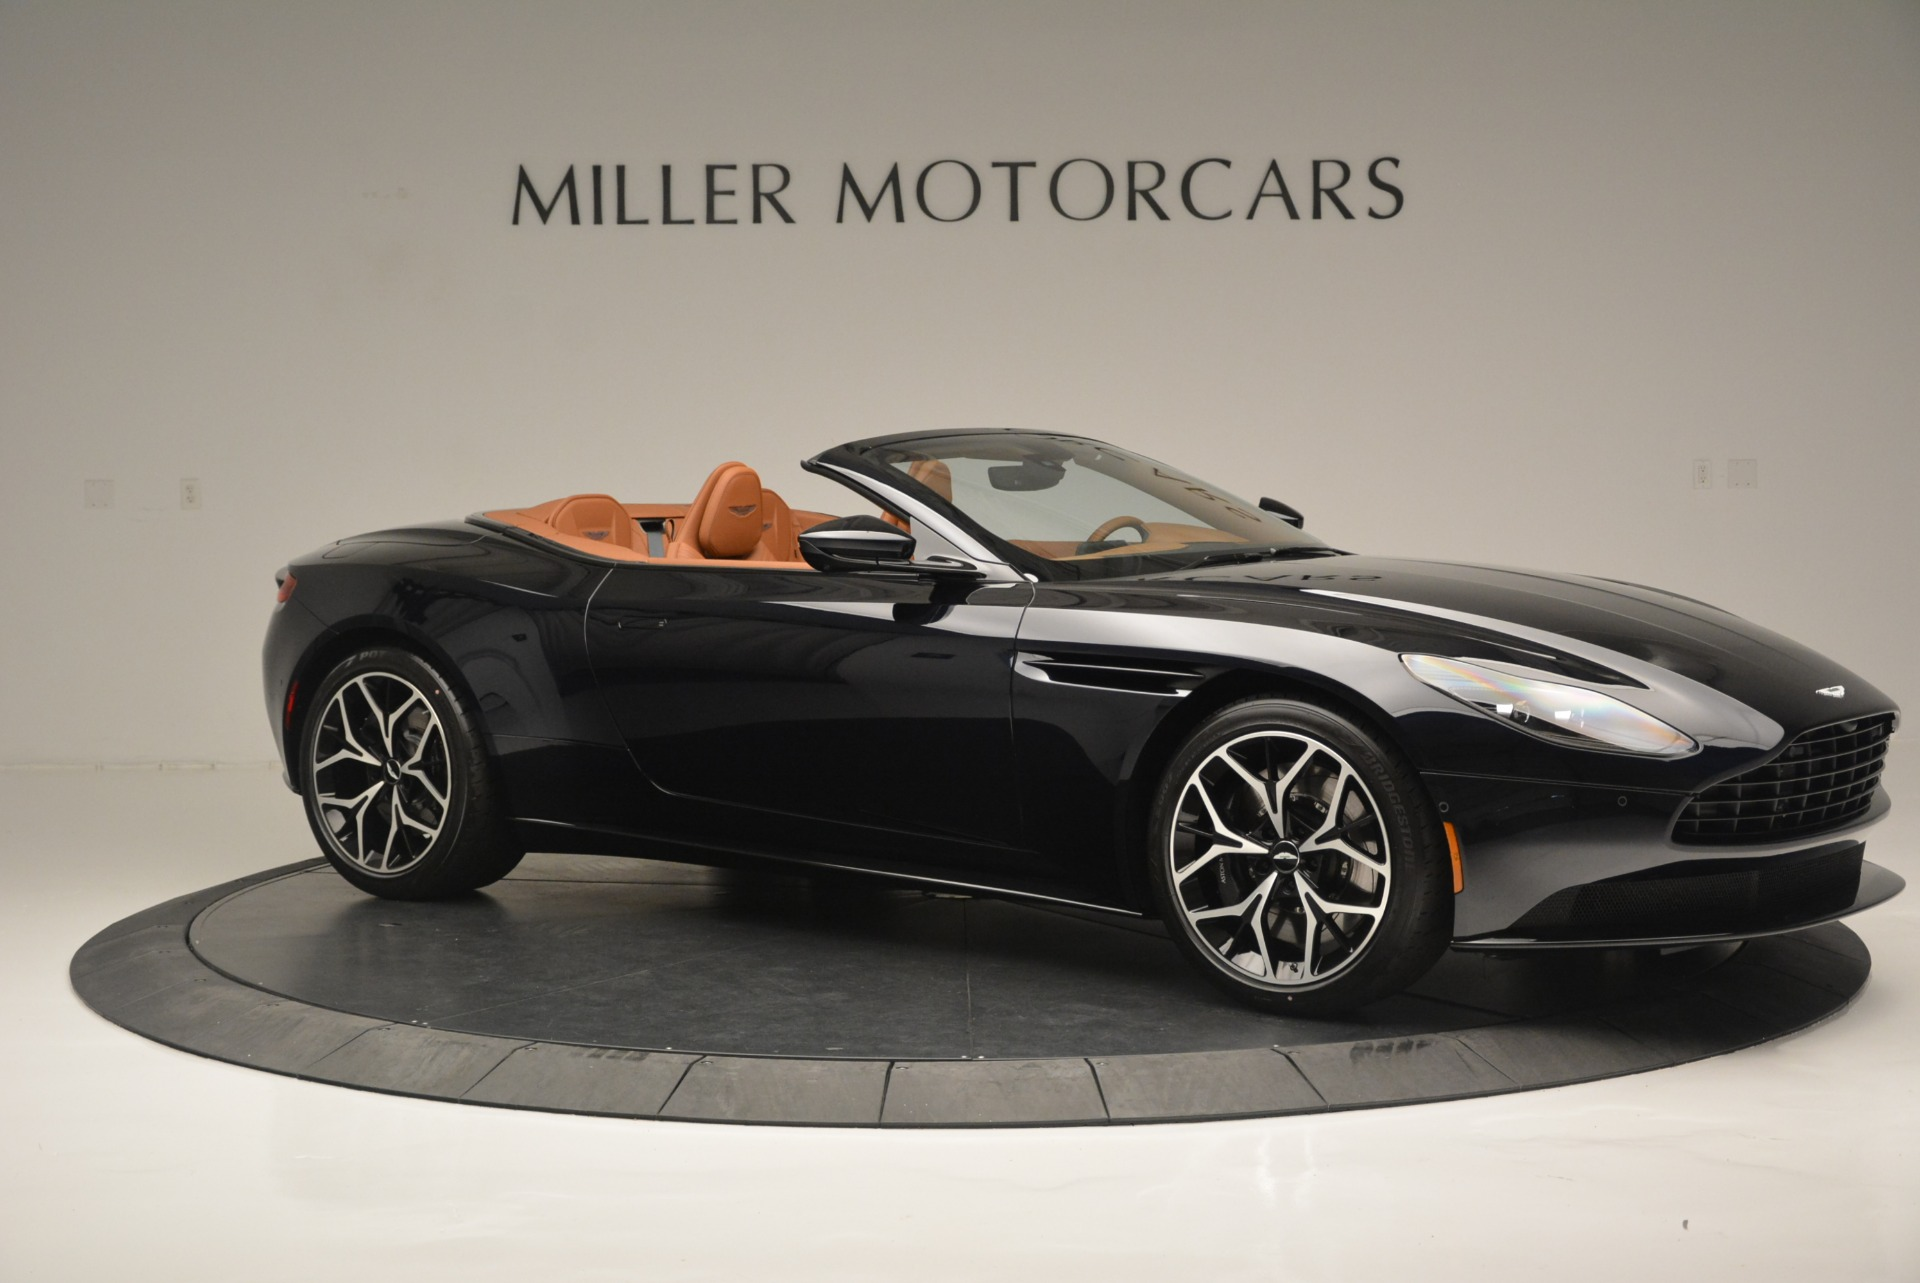 New 2019 Aston Martin DB11 Volante Volante For Sale In Westport, CT 2450_p10